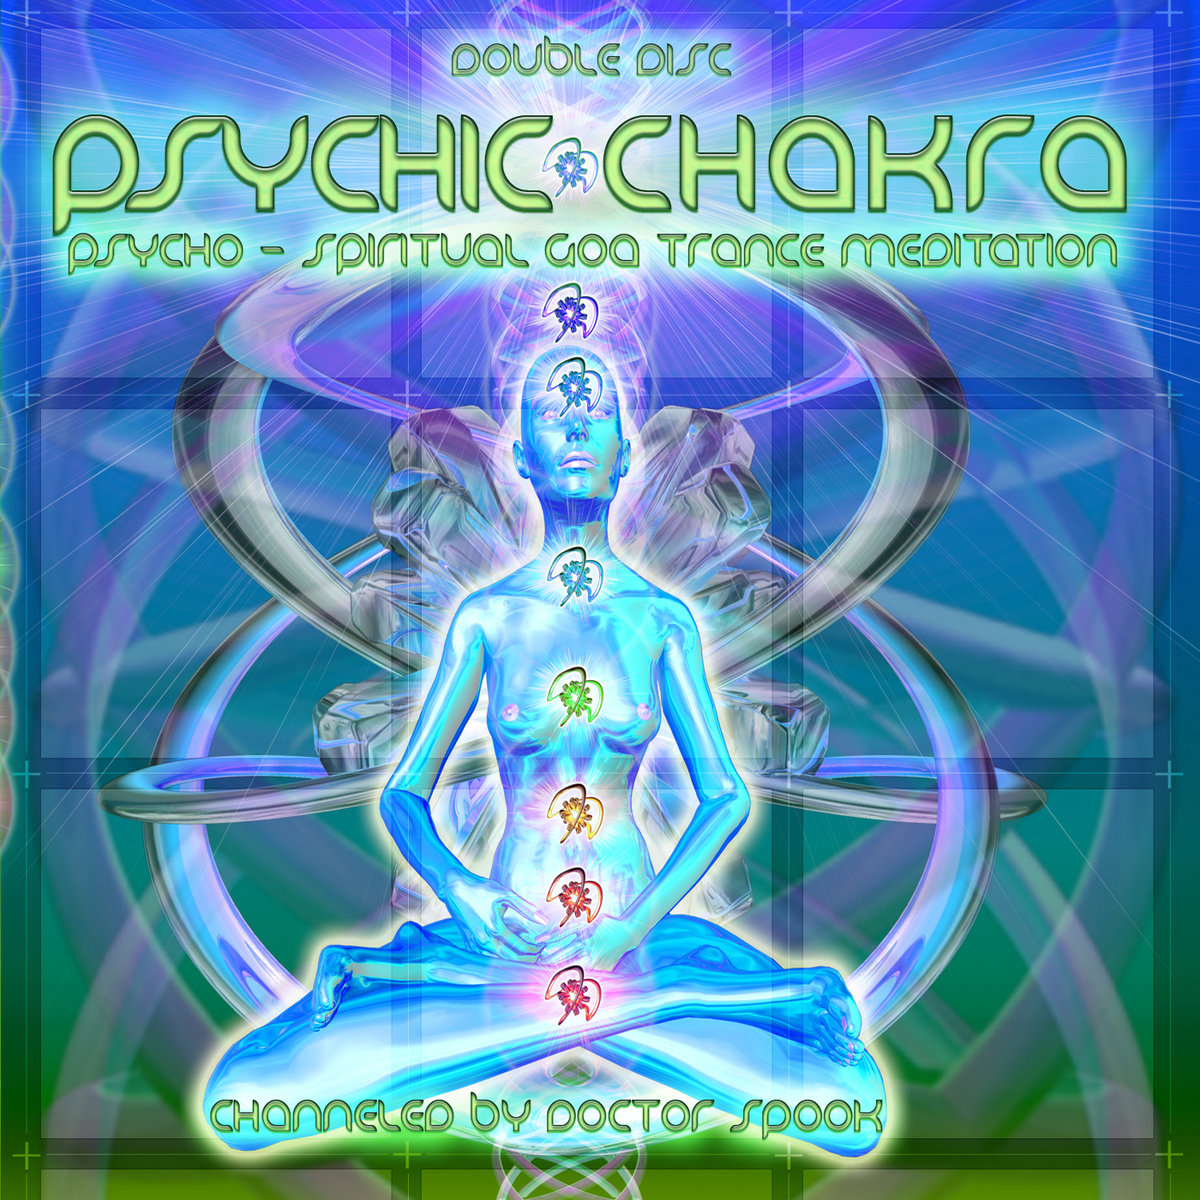 Ovnimoon - Before The Dark Times @ 'Various Artists - Psychic Chakra (Channeled by Dr. Spook)' album (electronic, psychic chakra)